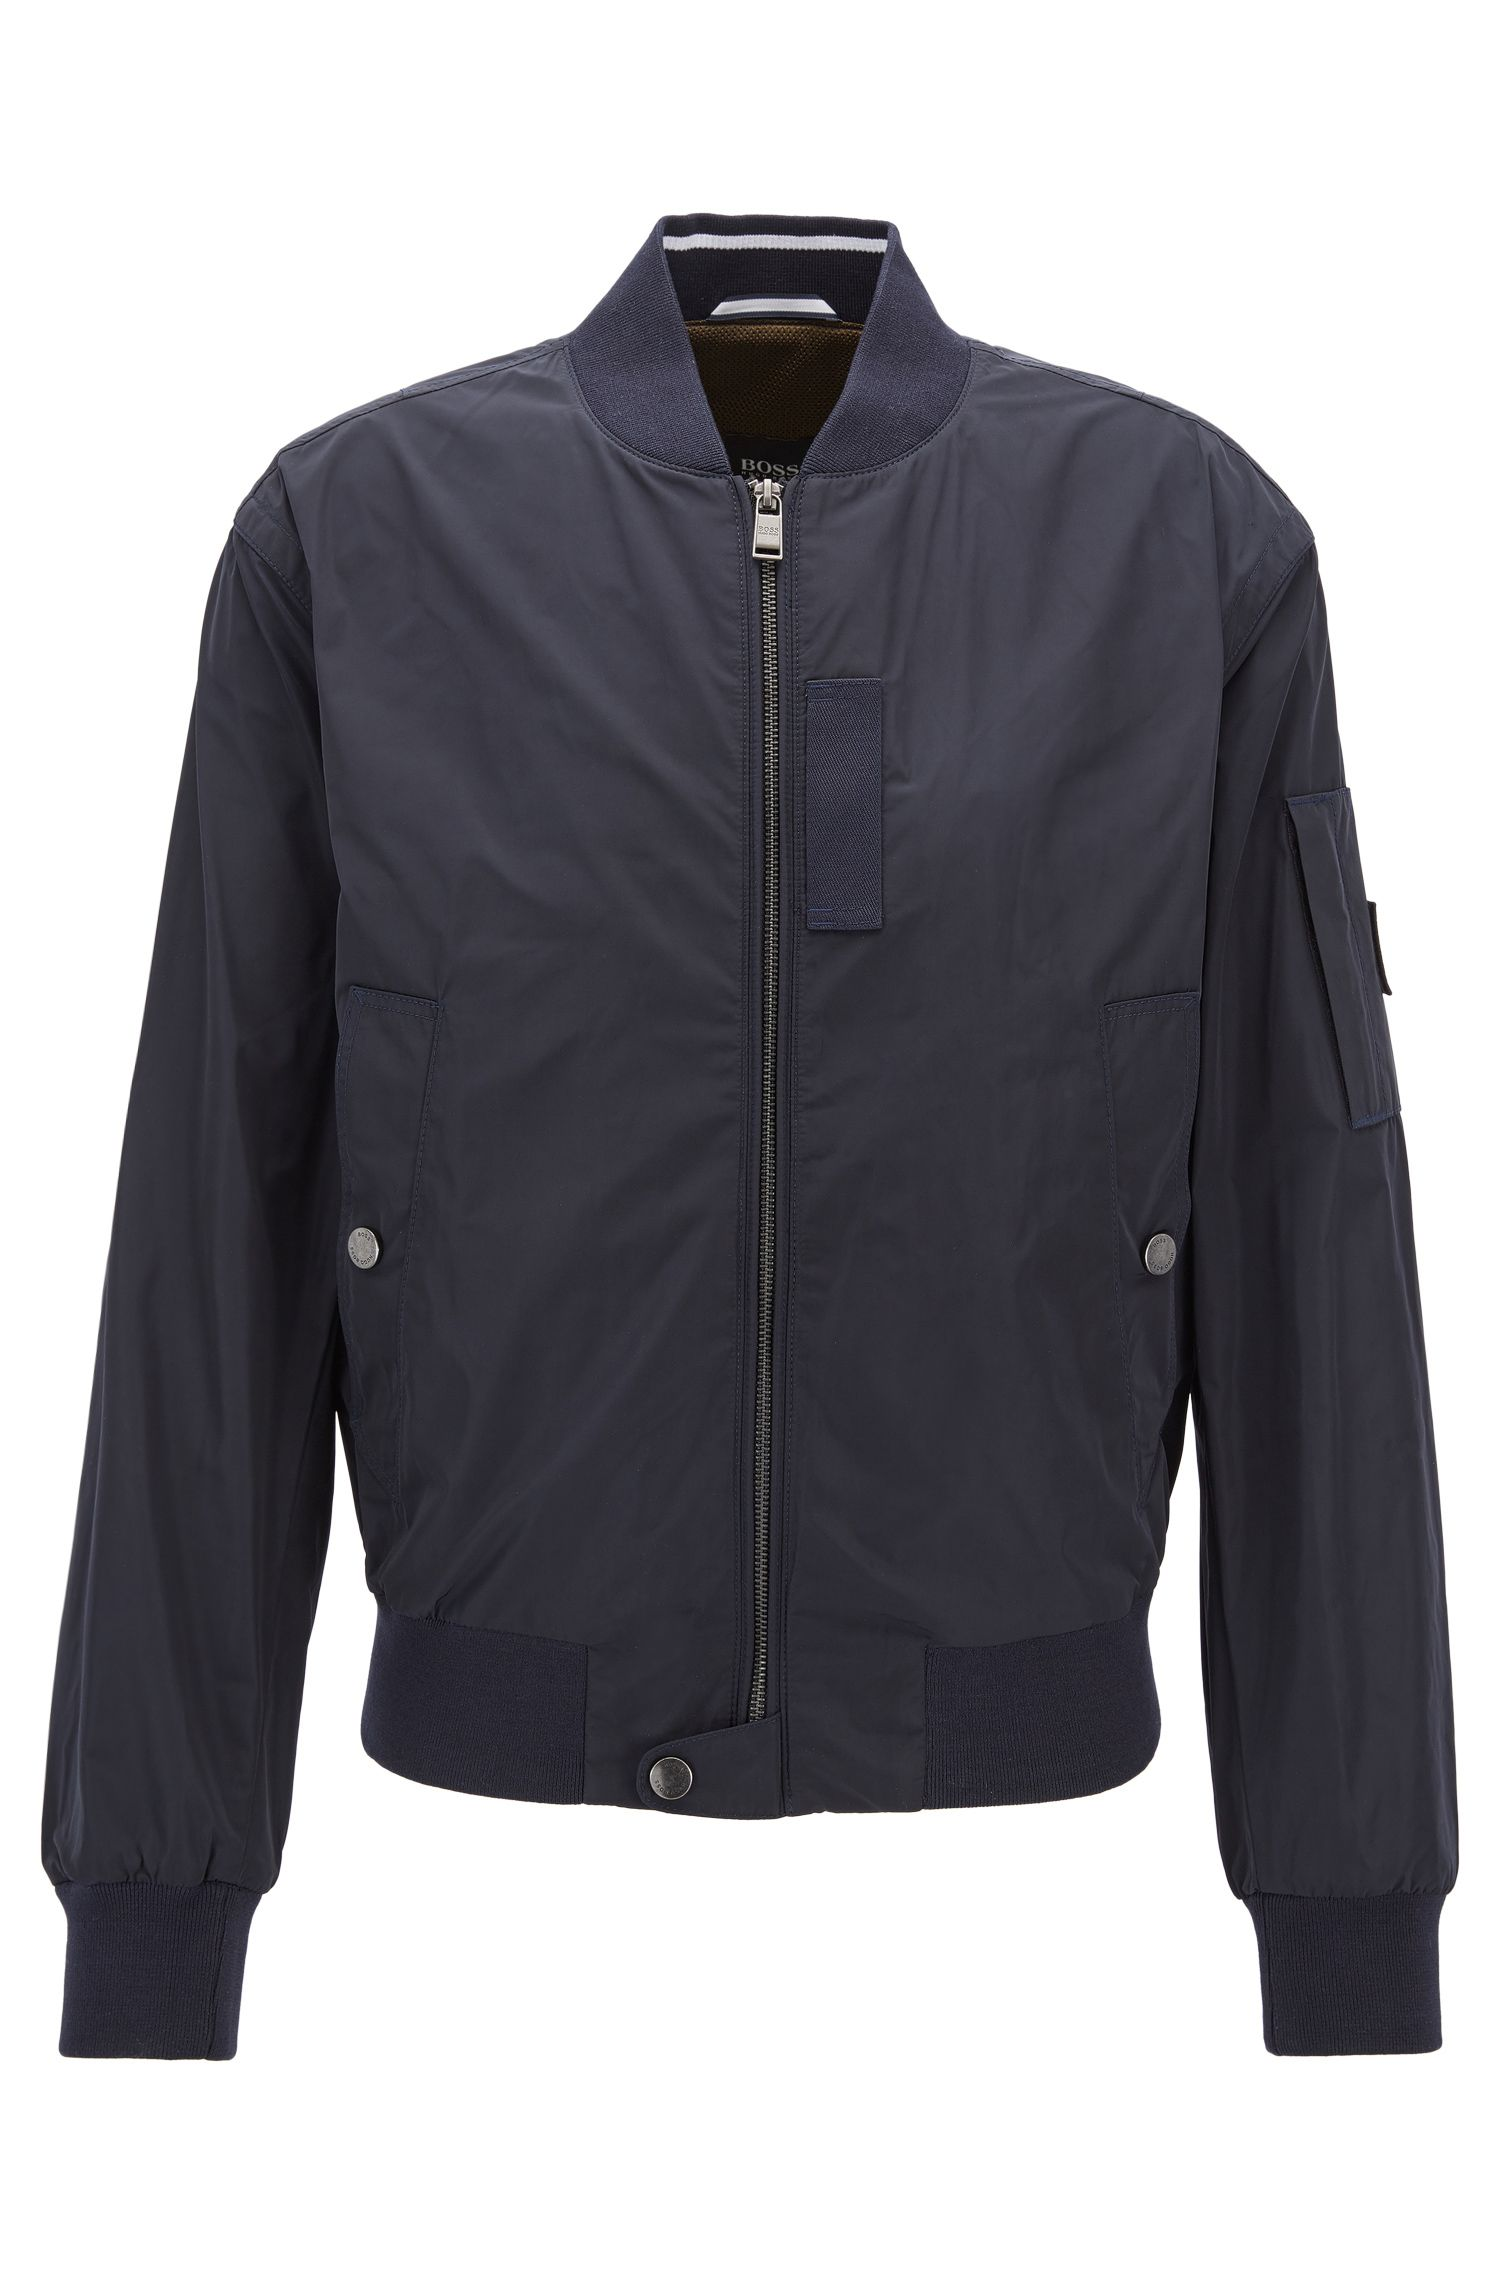 Bomber jacket in smooth technical fabric